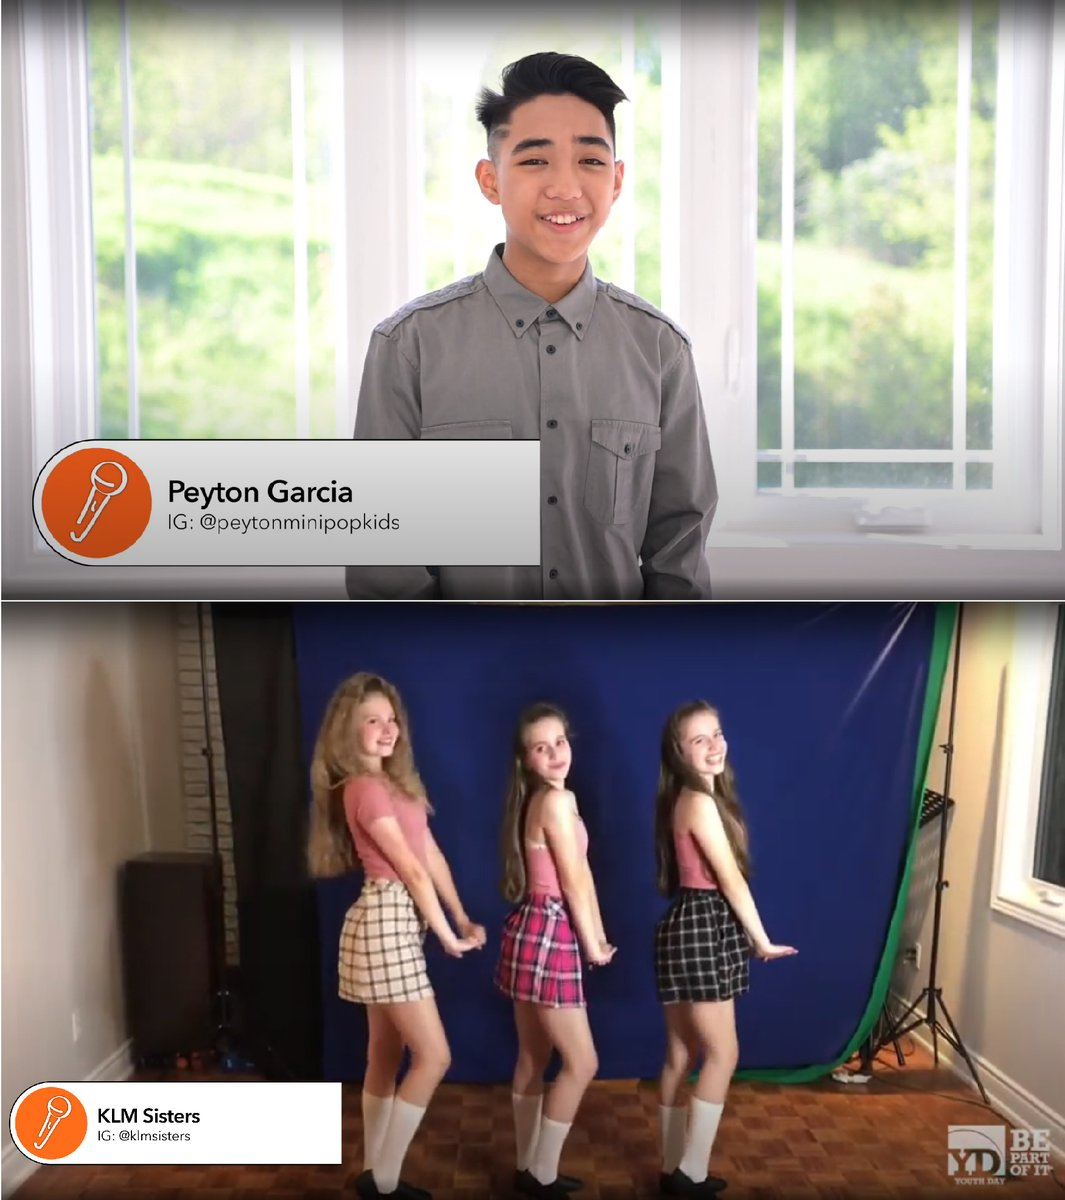 NO new Outdoor Summer Events - YOUTH DAY will virtually Celebrate in July with 2nd YD2021 FestCast  Reminder that YD2021 Auditions open Feb 1st Check out REEL #9 today     #YOUTHDAY #chum1045 #TylaineDuggan #peytongarcia #peytongarciaofficial #KLMSisters